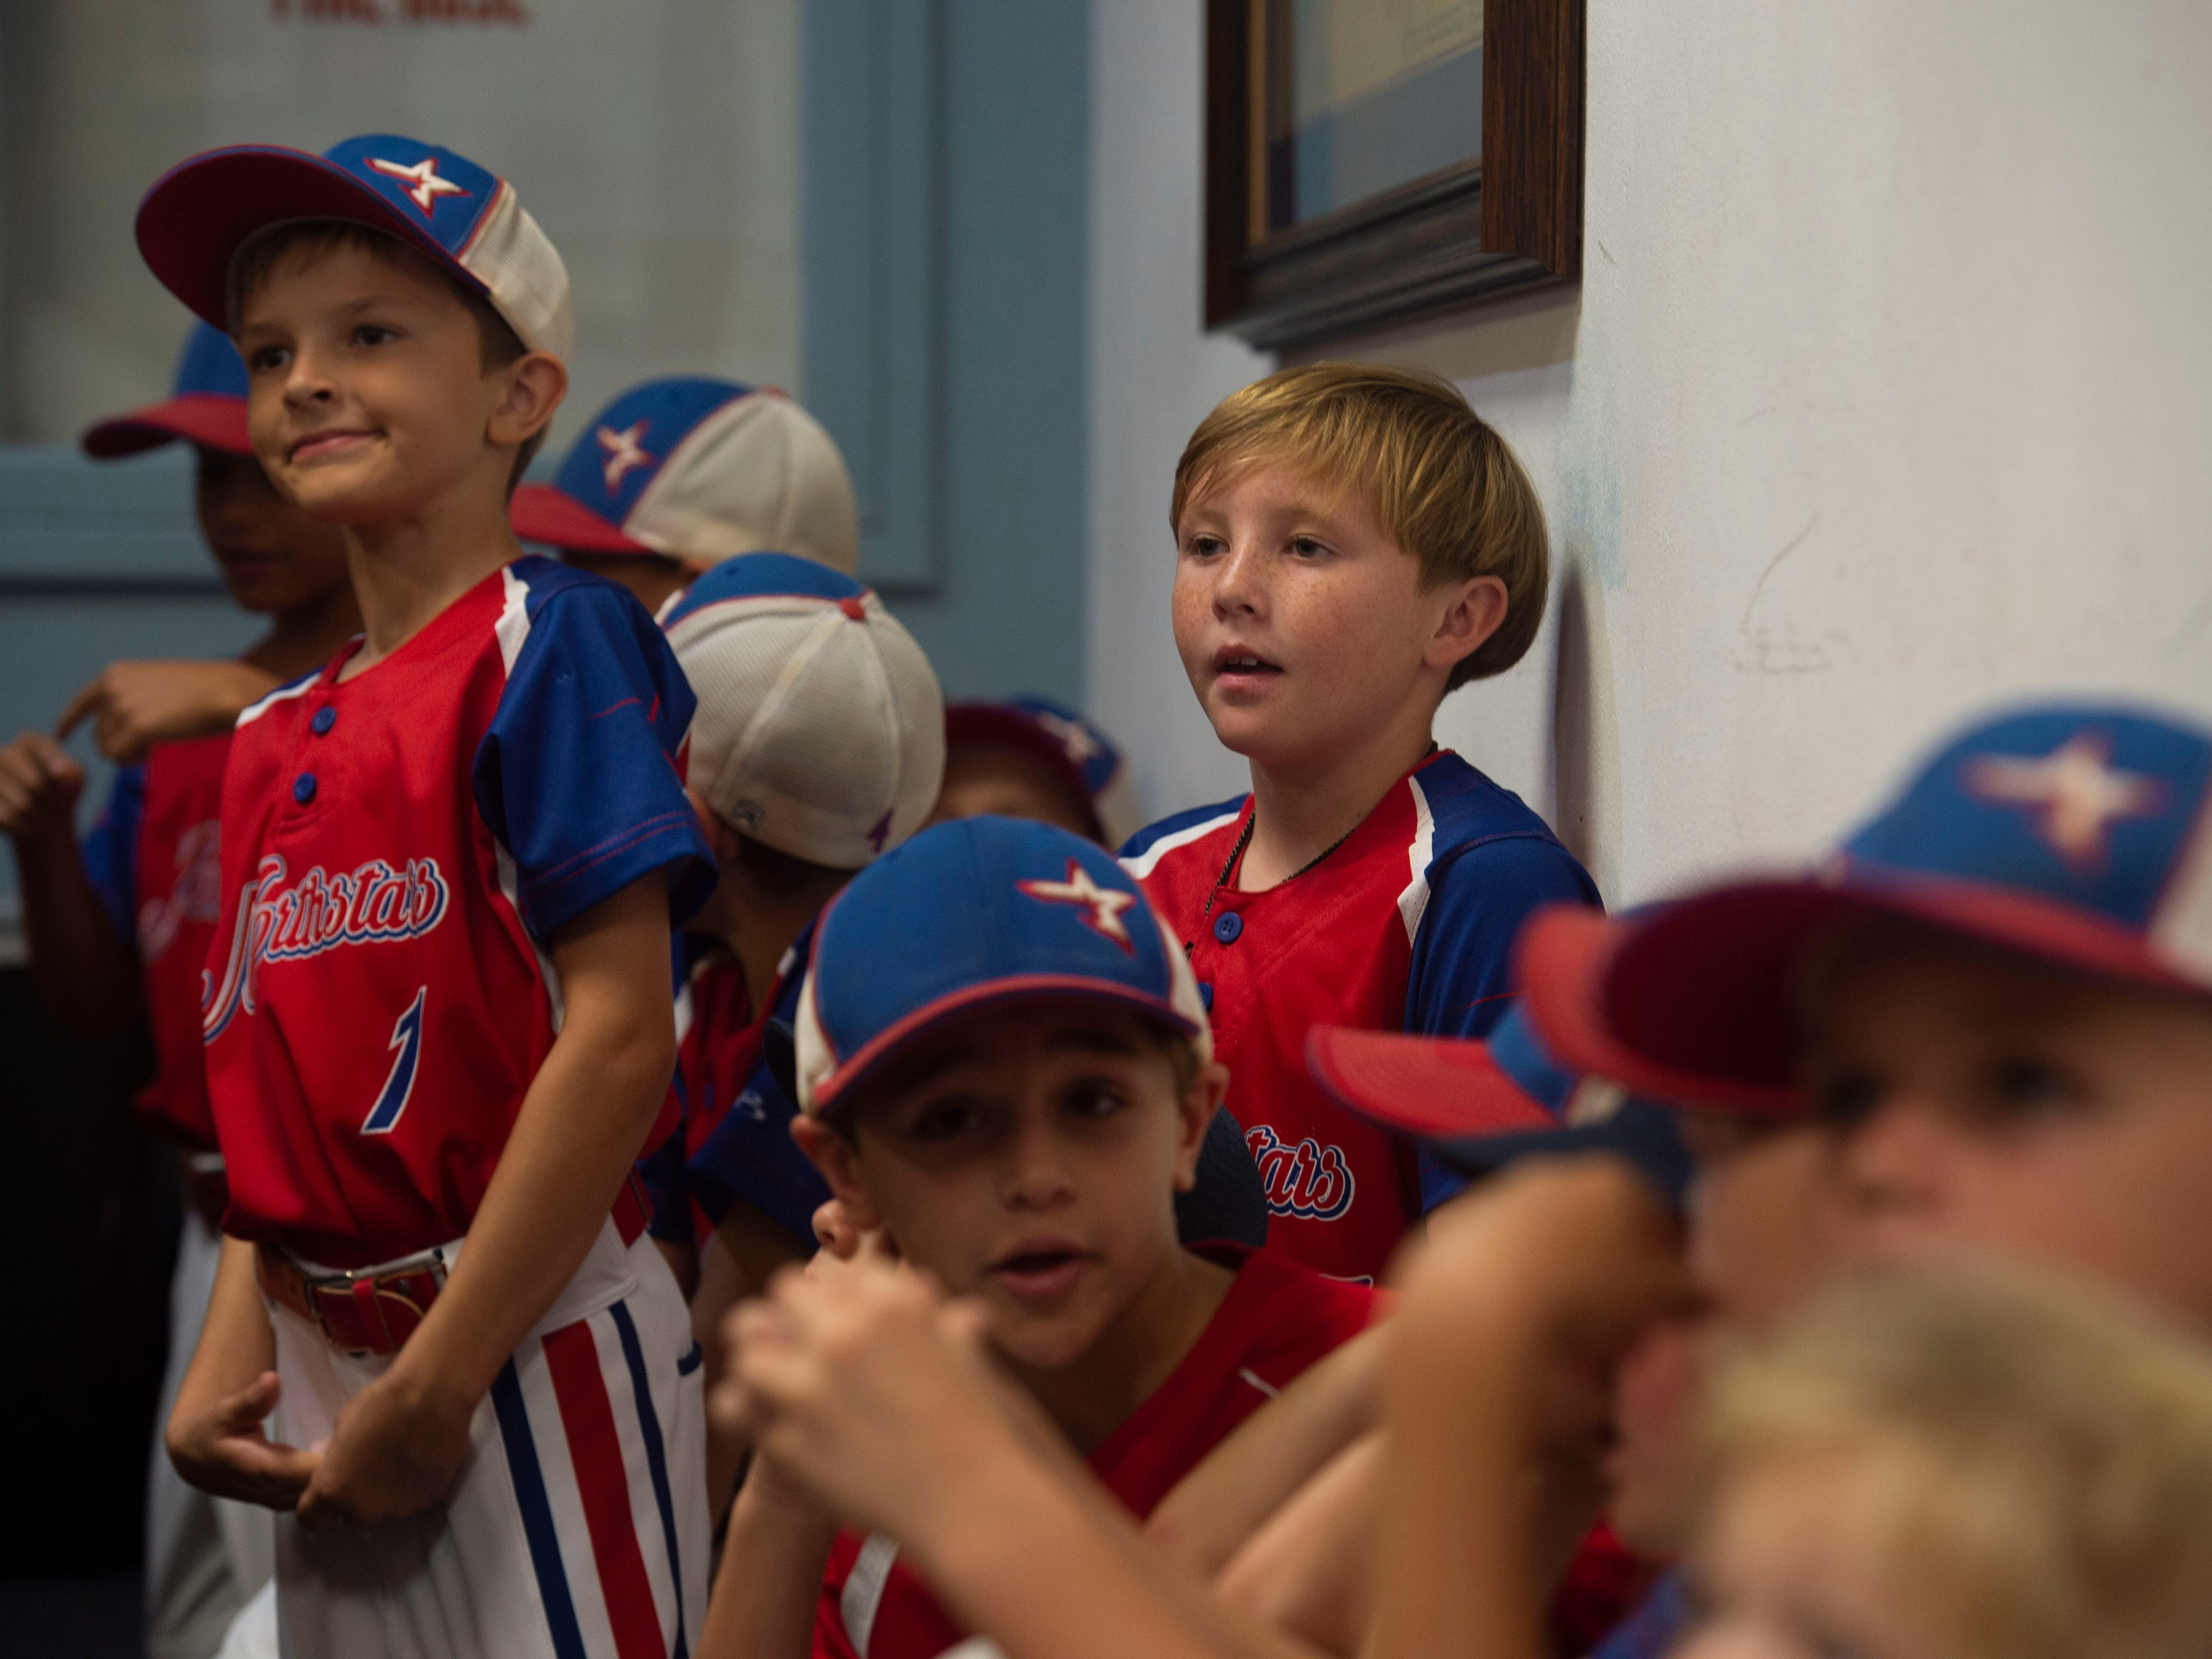 Surrounded by teammates, Northstars player Colby Galinis (center,) 9, of SewallÕs Point, looks on in curiosity ahead of his first public meeting Monday, Nov. 26, 2018 at Stuart City Hall. The city commission meeting was packed full of young baseball players and their parents opposing the redevelopment of Sailfish Park and its baseball fields.